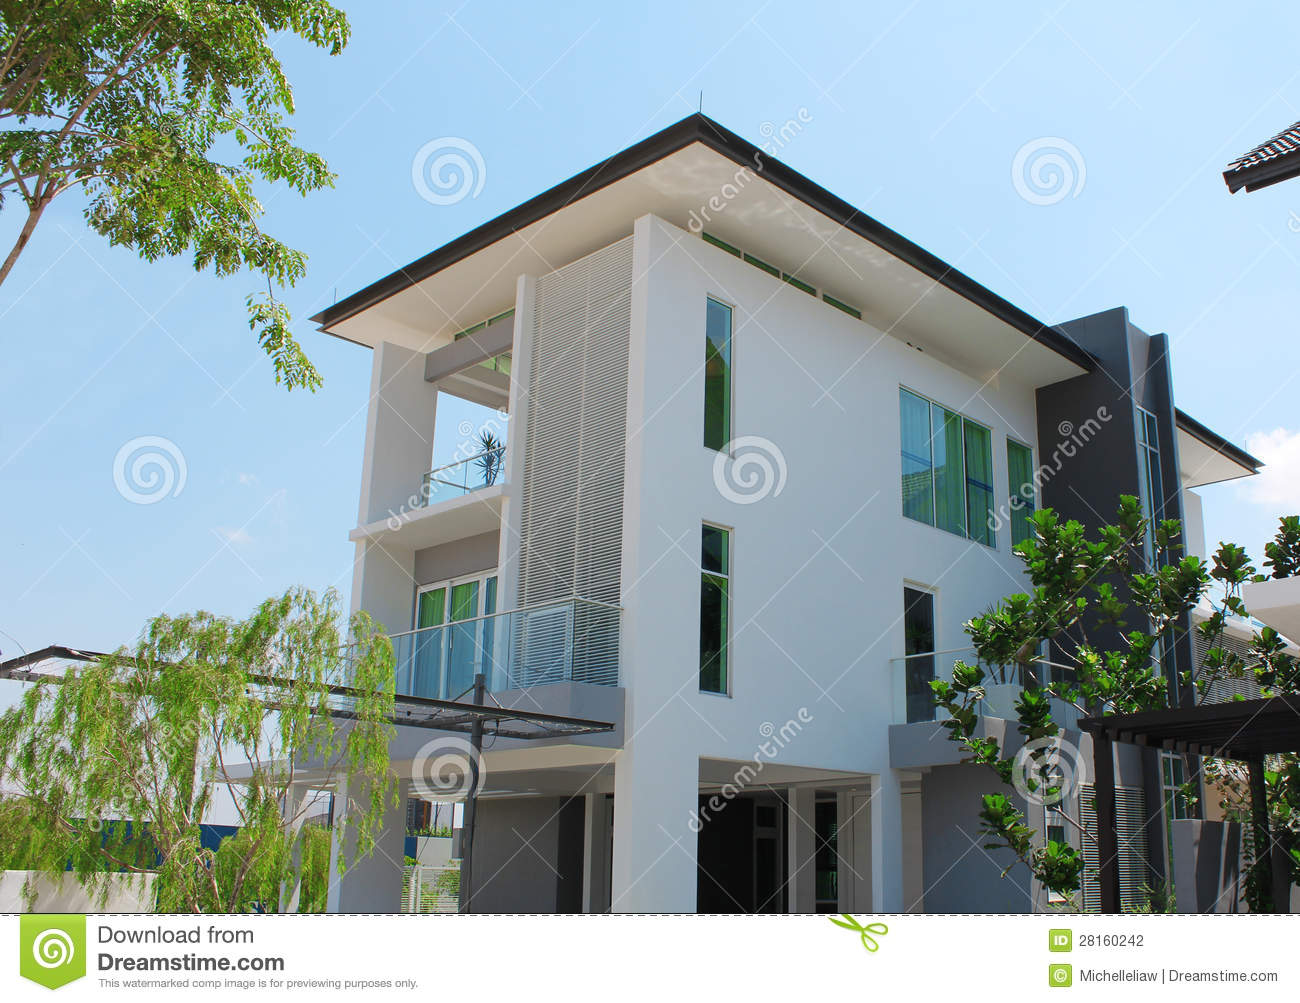 Modern 3storey Bungalow Design Stock Photography Image 28160242